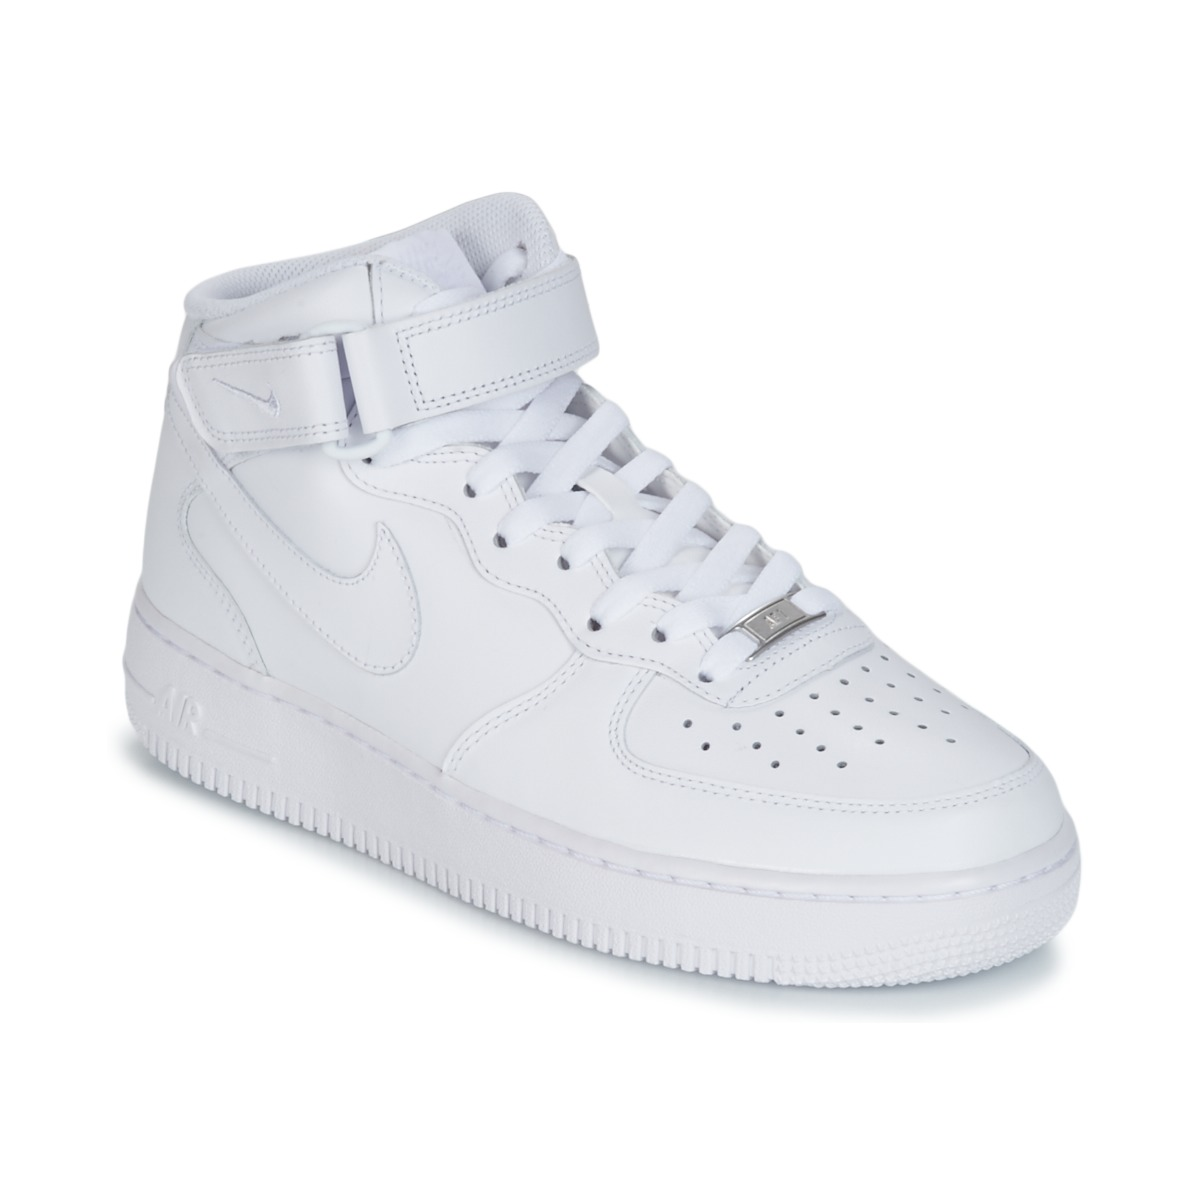 nike air force 1 bianche 43 alte uomo